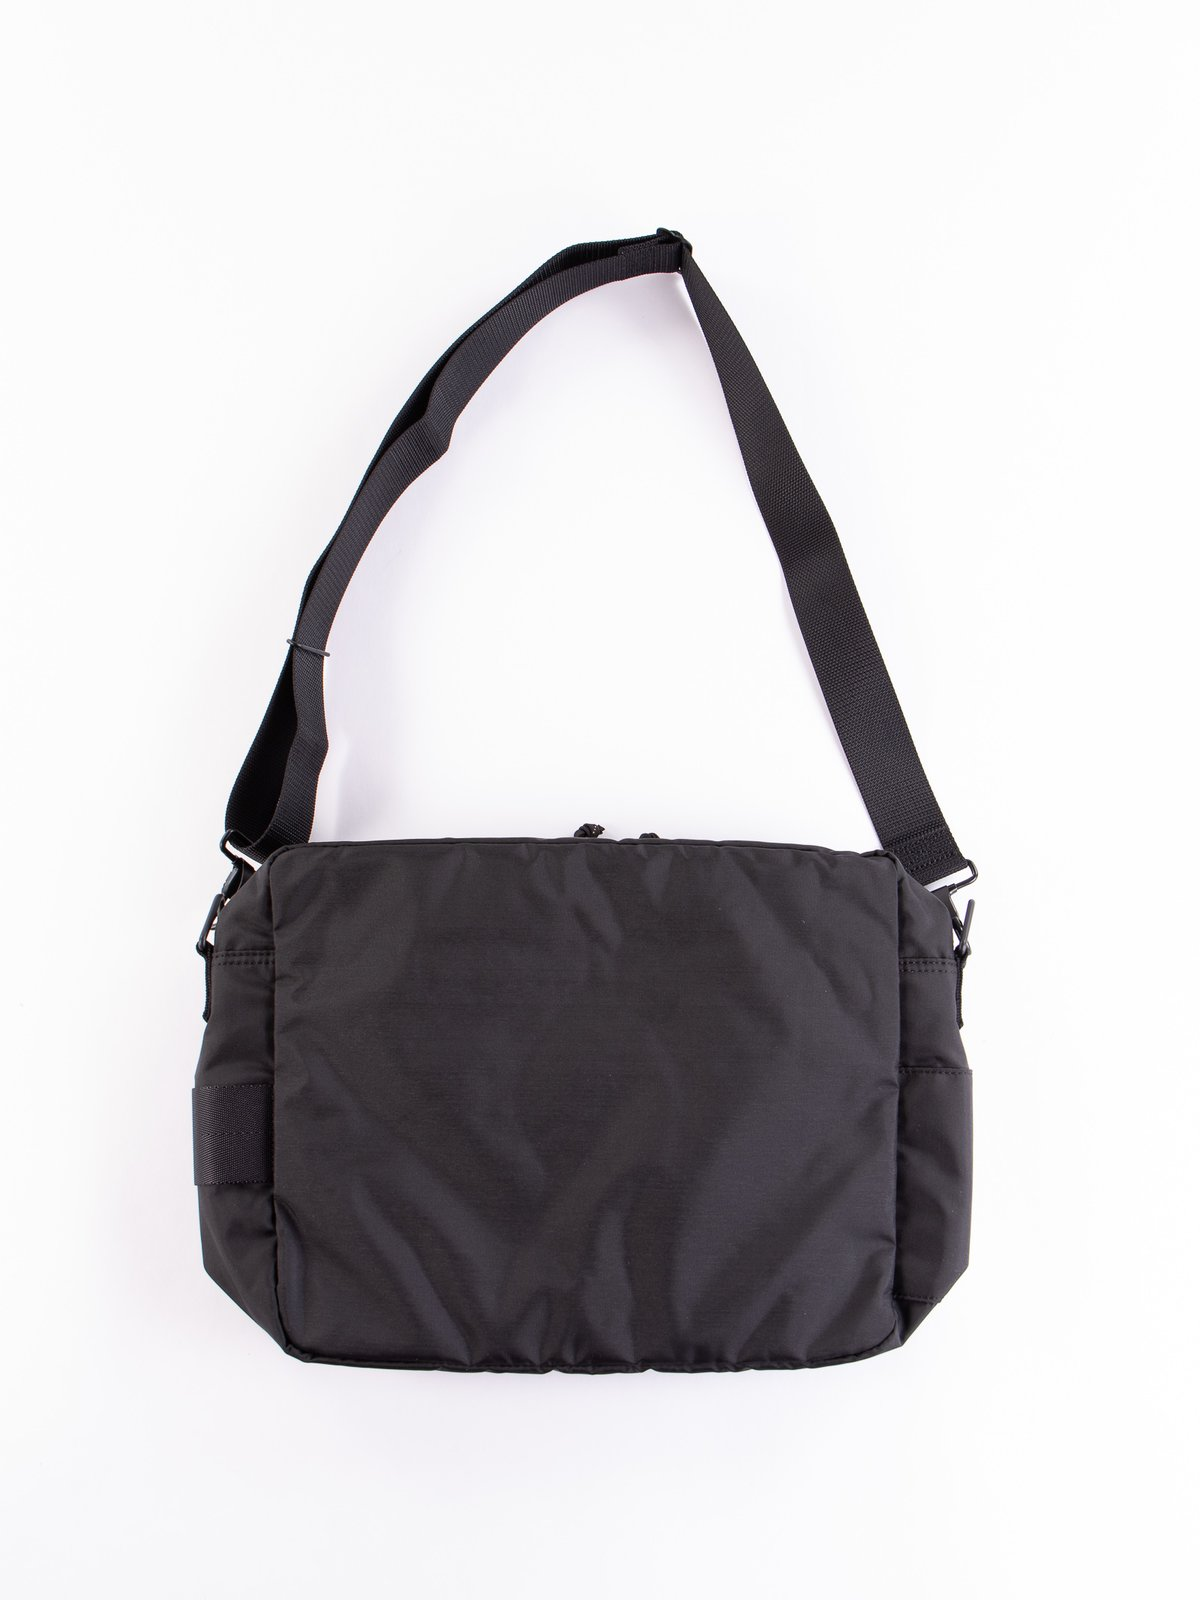 Black Medium Force Shoulder Bag - Image 3